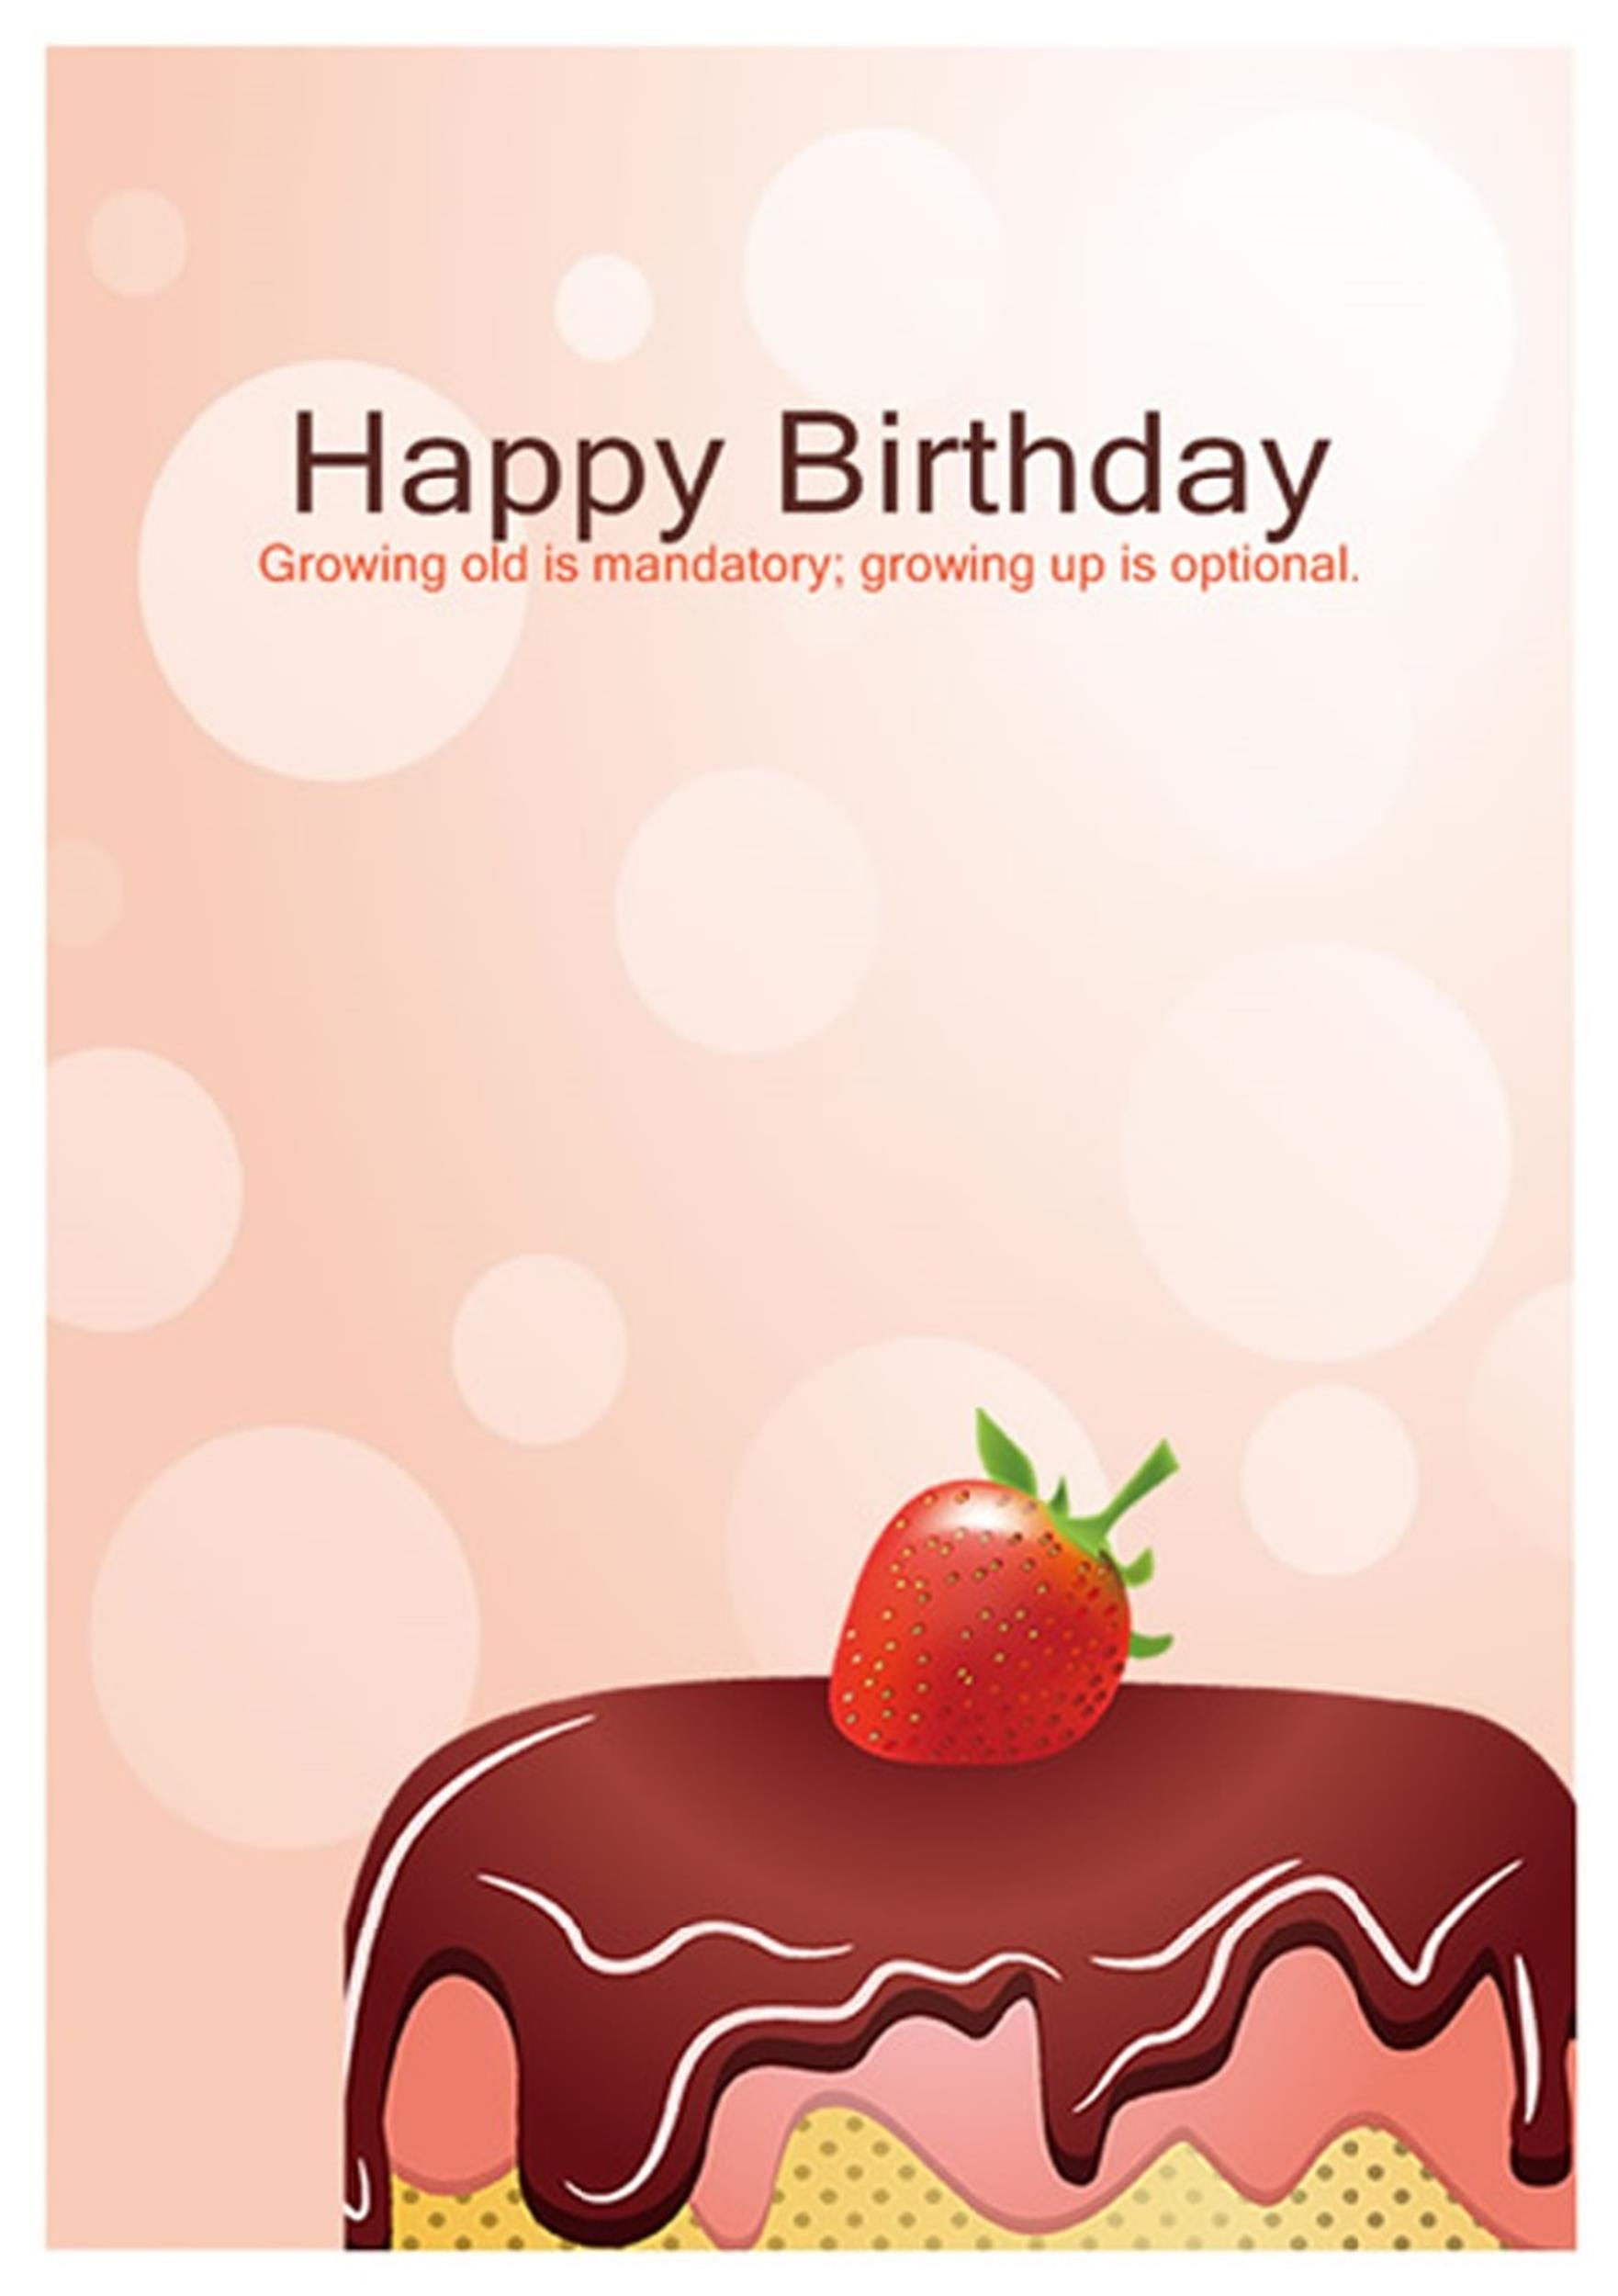 Free Birthday Card Template 10